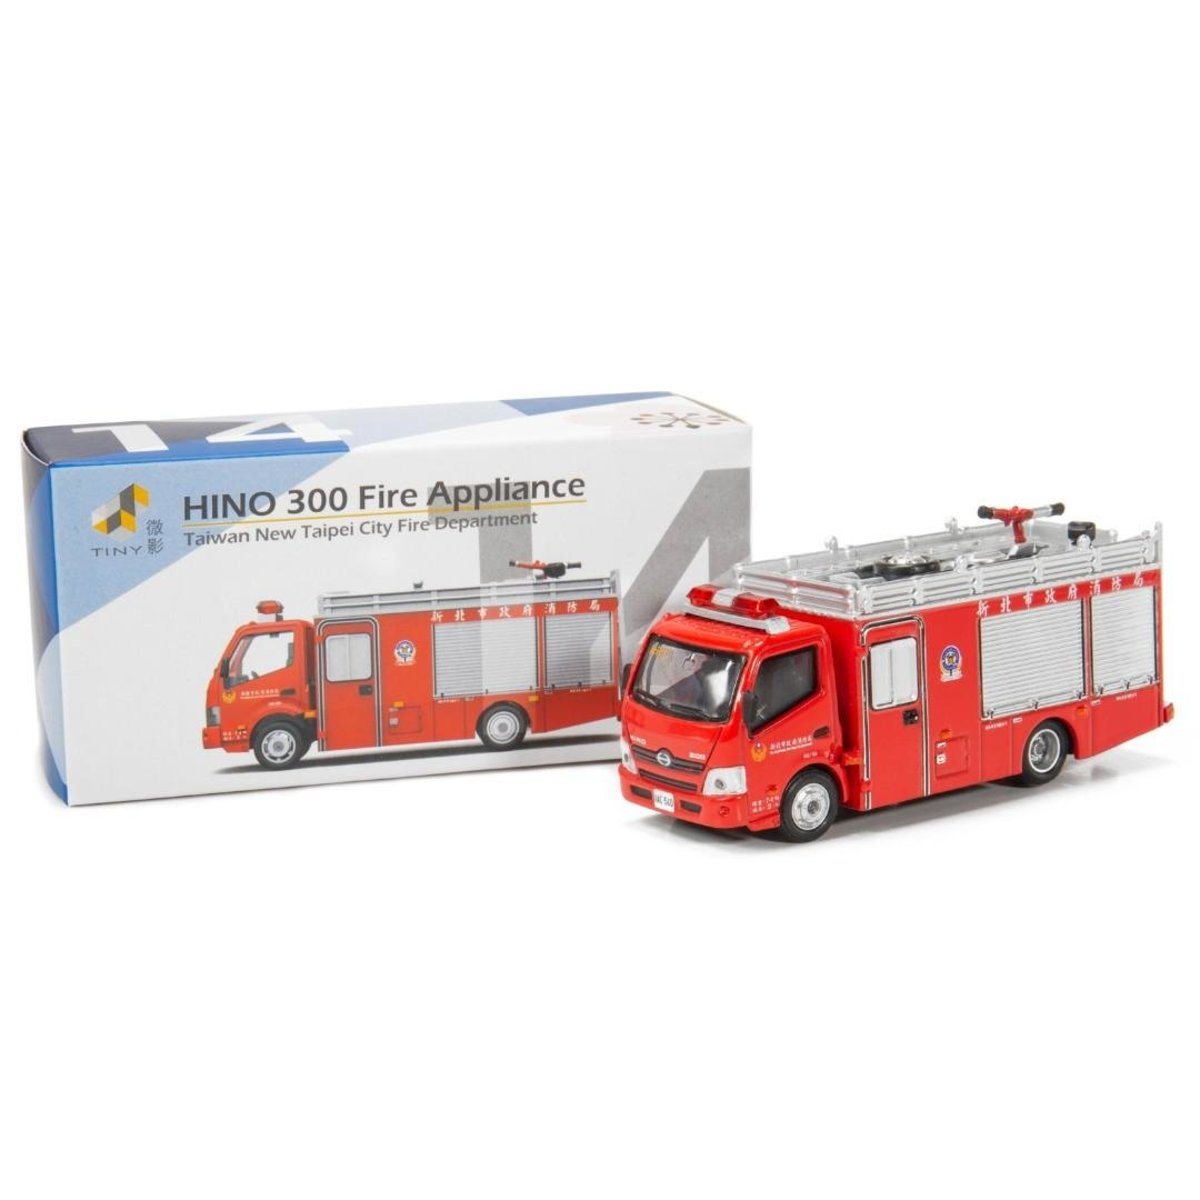 Tiny City TW Die-cast Model Car - HINO 300 Kaohsiung City Fire Department